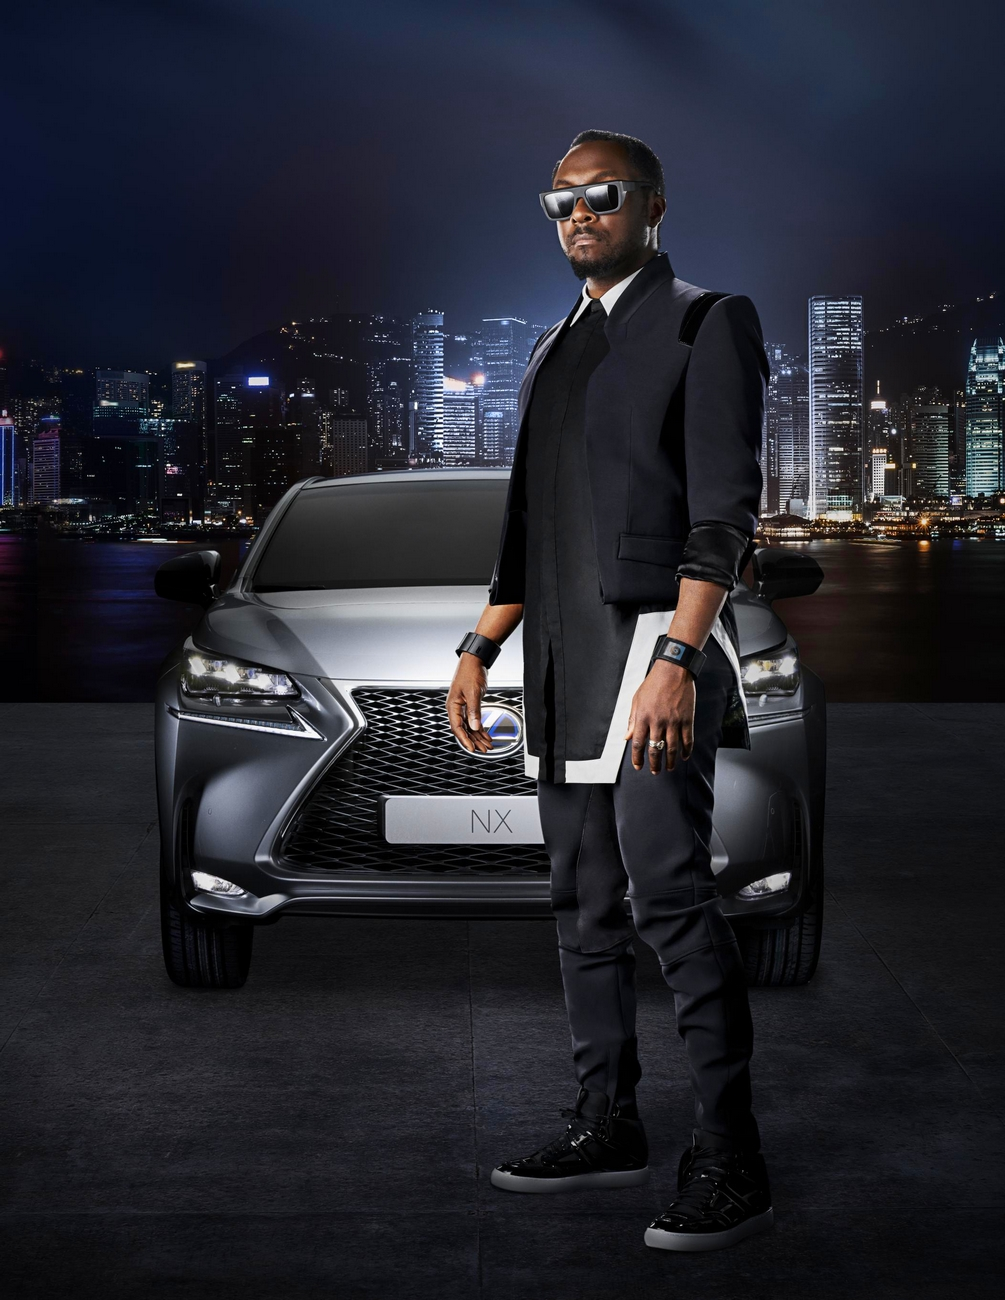 Lexus NX et Will.i.am.3